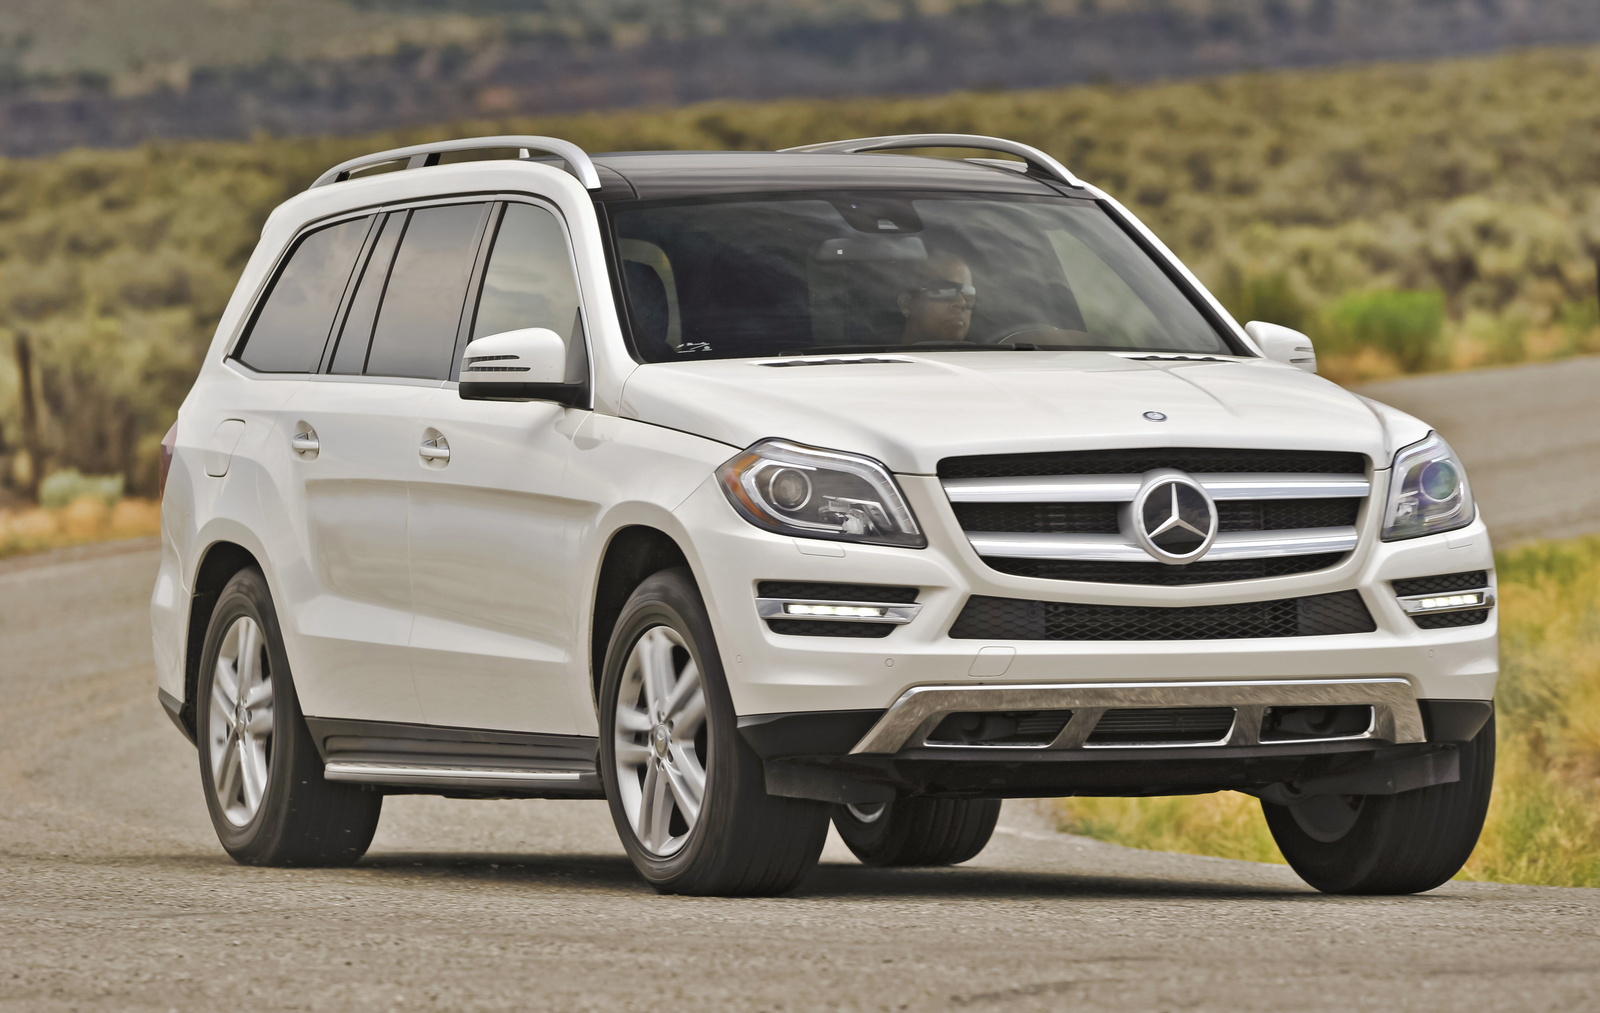 Used 2009 Mercedes-Benz GL-Class Pricing & Features | Edmunds